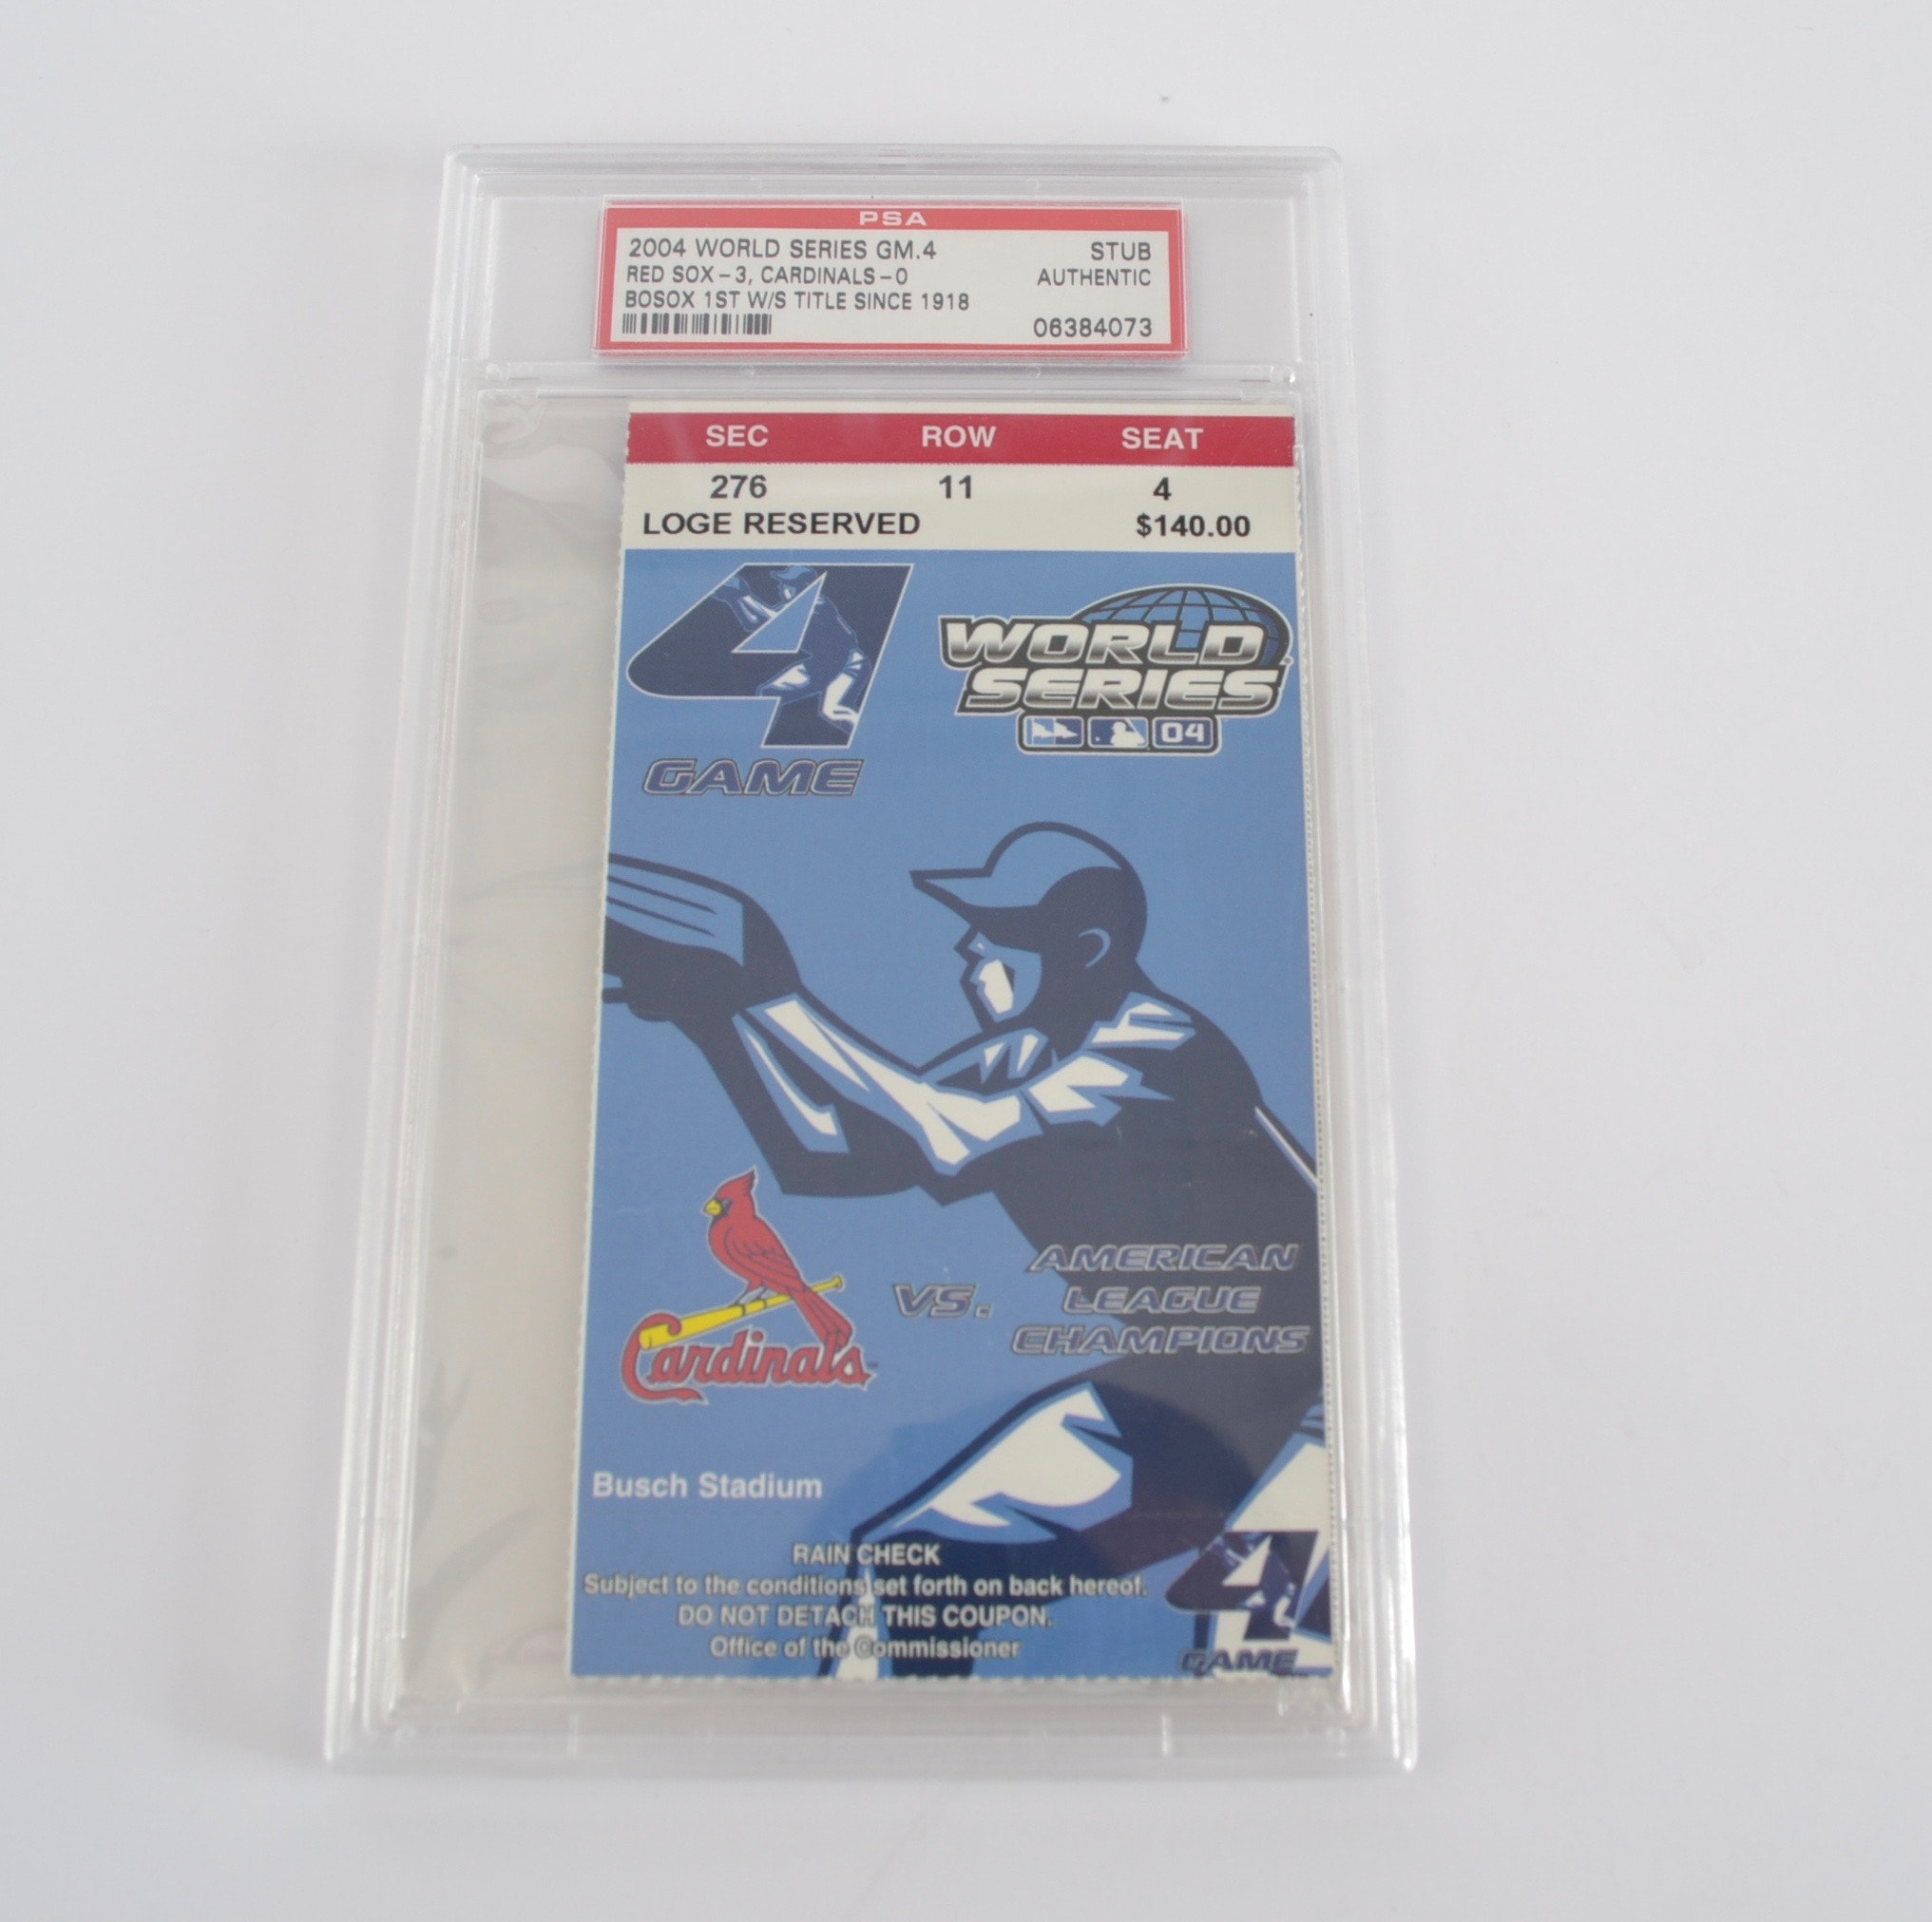 Game 4 2004 World Series Ticket Stub with PSA Encapsulation